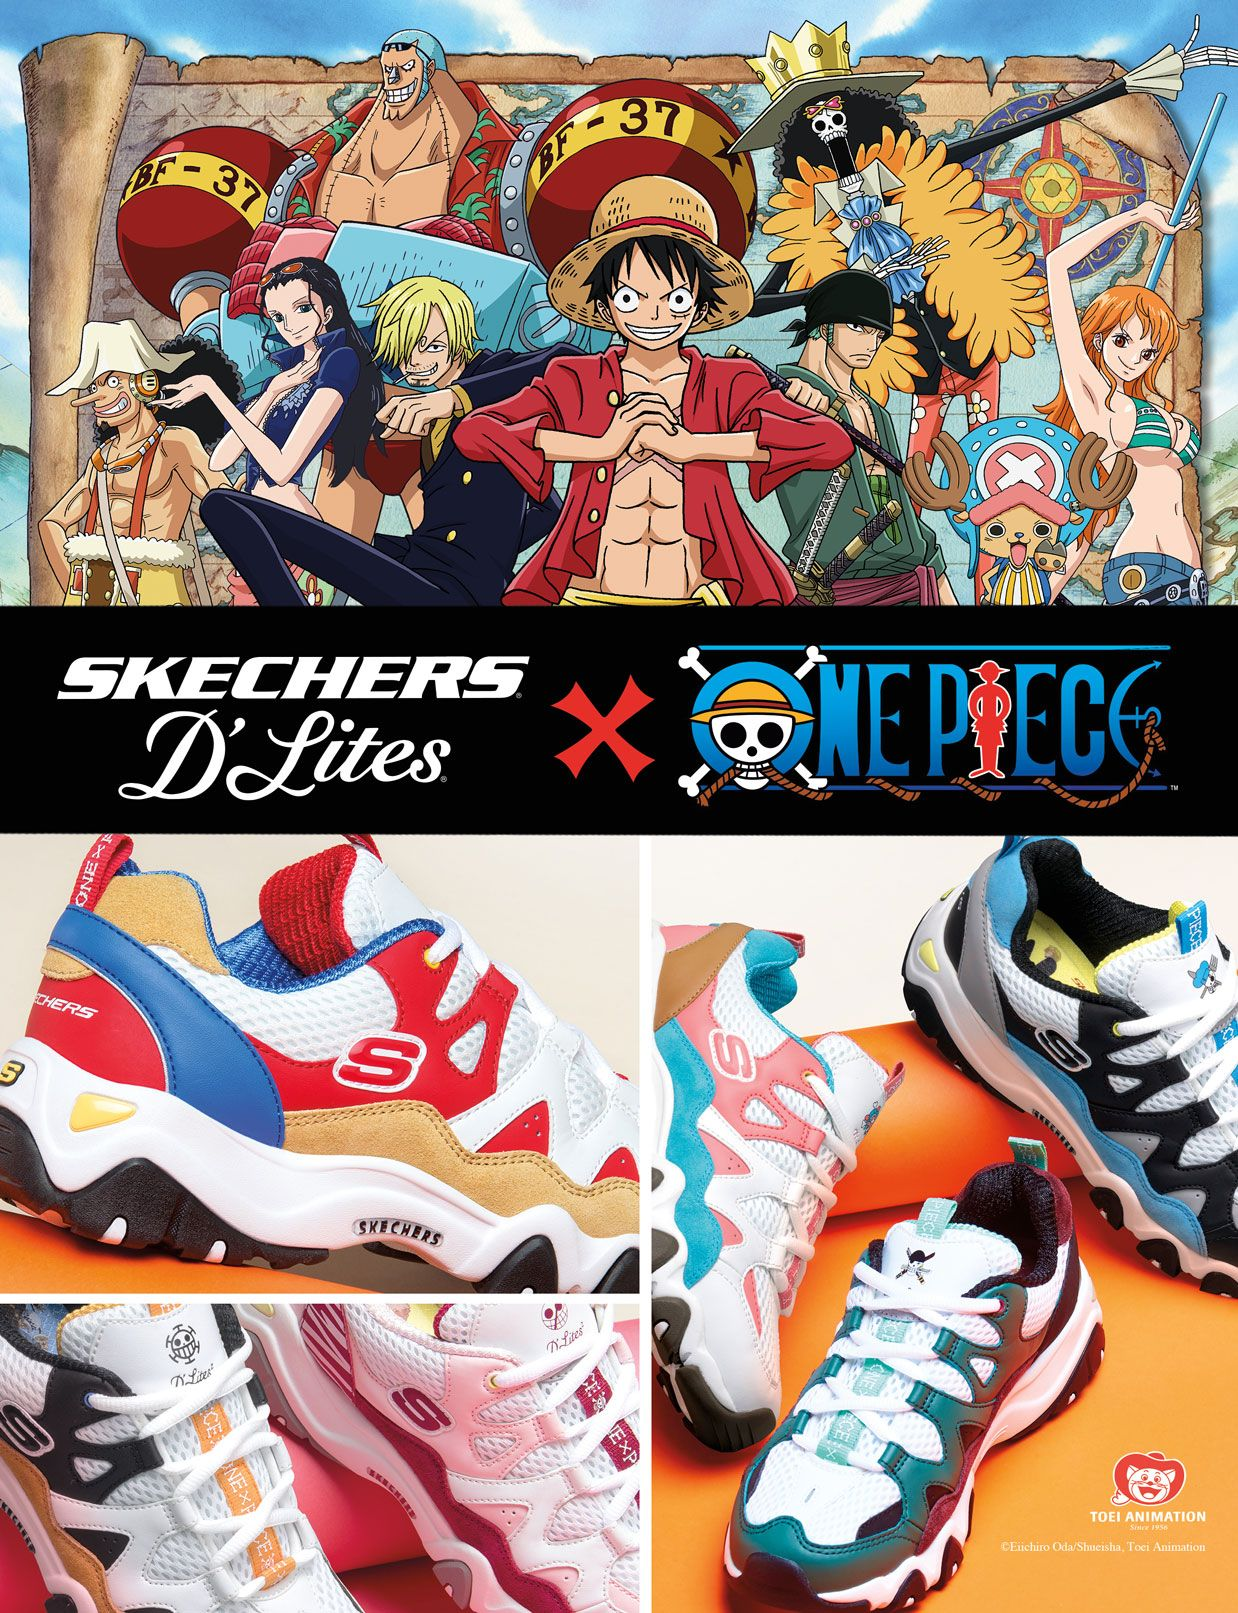 We Ve Teamed Up With Your Favorite Anime Series To Bring You These